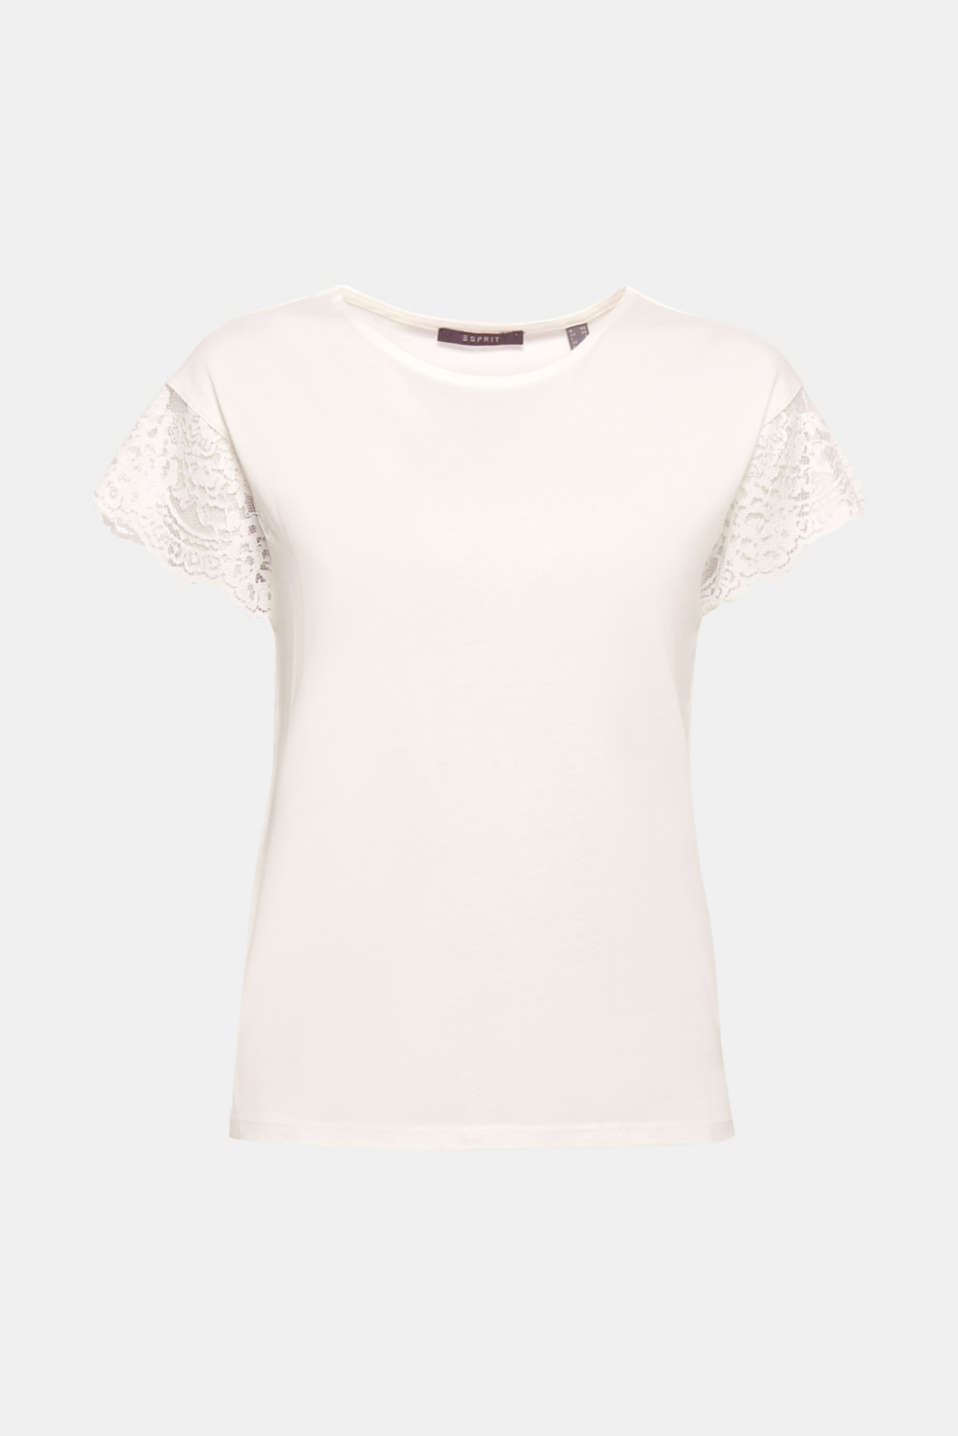 We love lace in all forms! In this wonderfully lightweight top, the lace used for the short, wide sleeves is an elegant eye-catching feature!